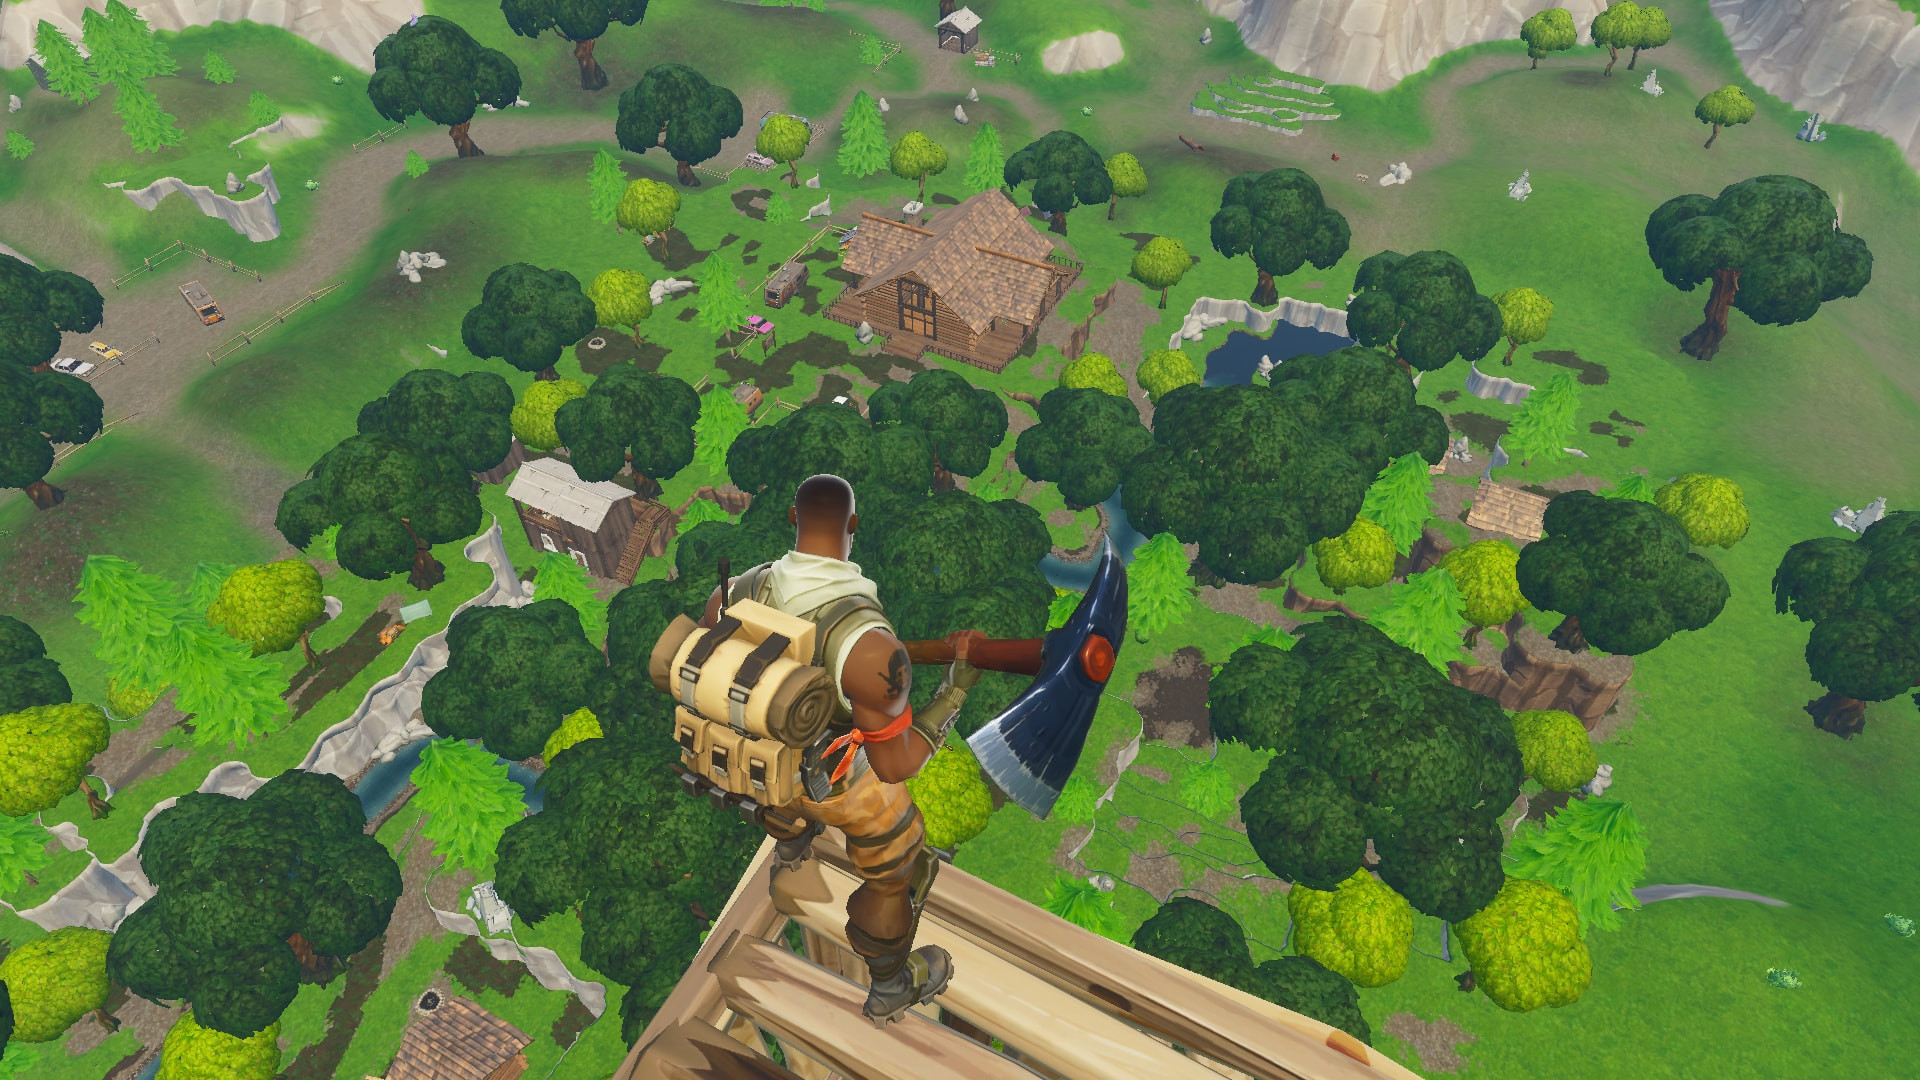 Top view of Lonely Lodge | Fortnite - zilliongamer your game guide